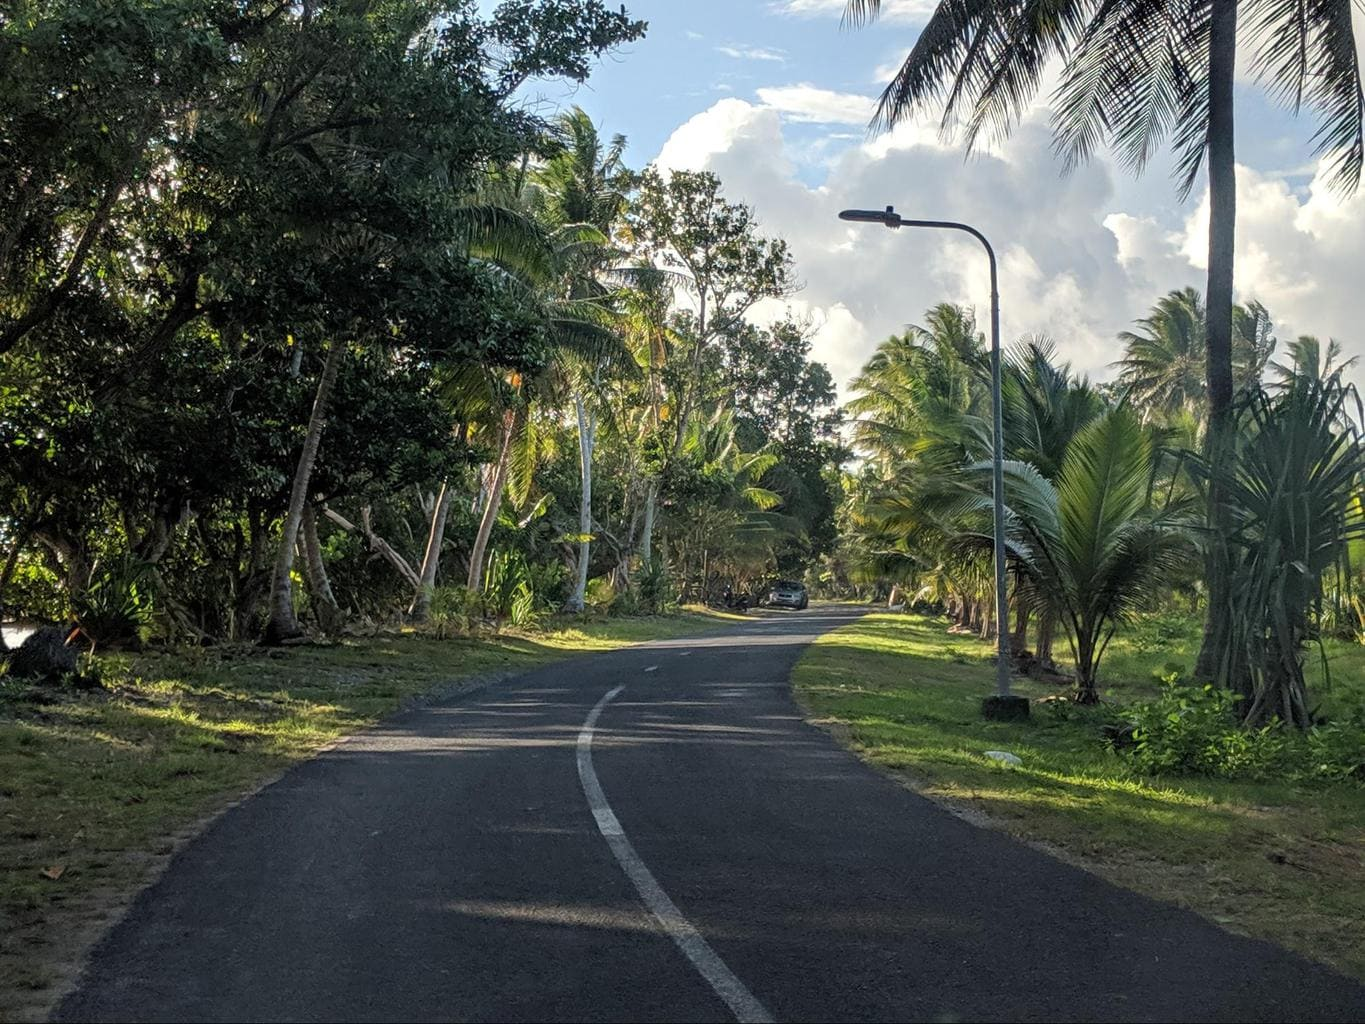 The only paved road in Tuvalu